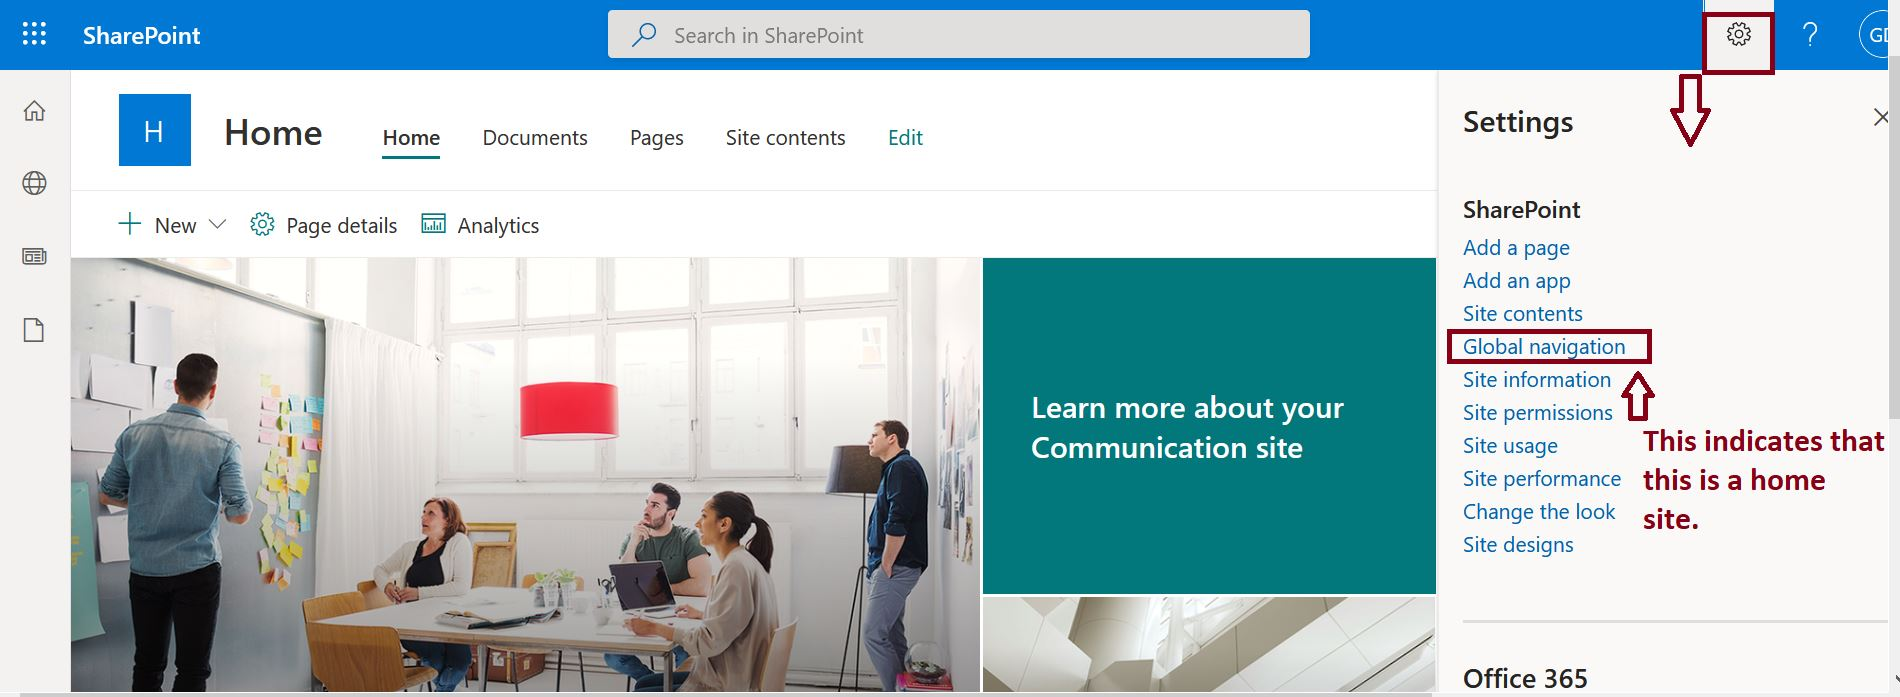 Set up home site app for your organization in SharePoint Online